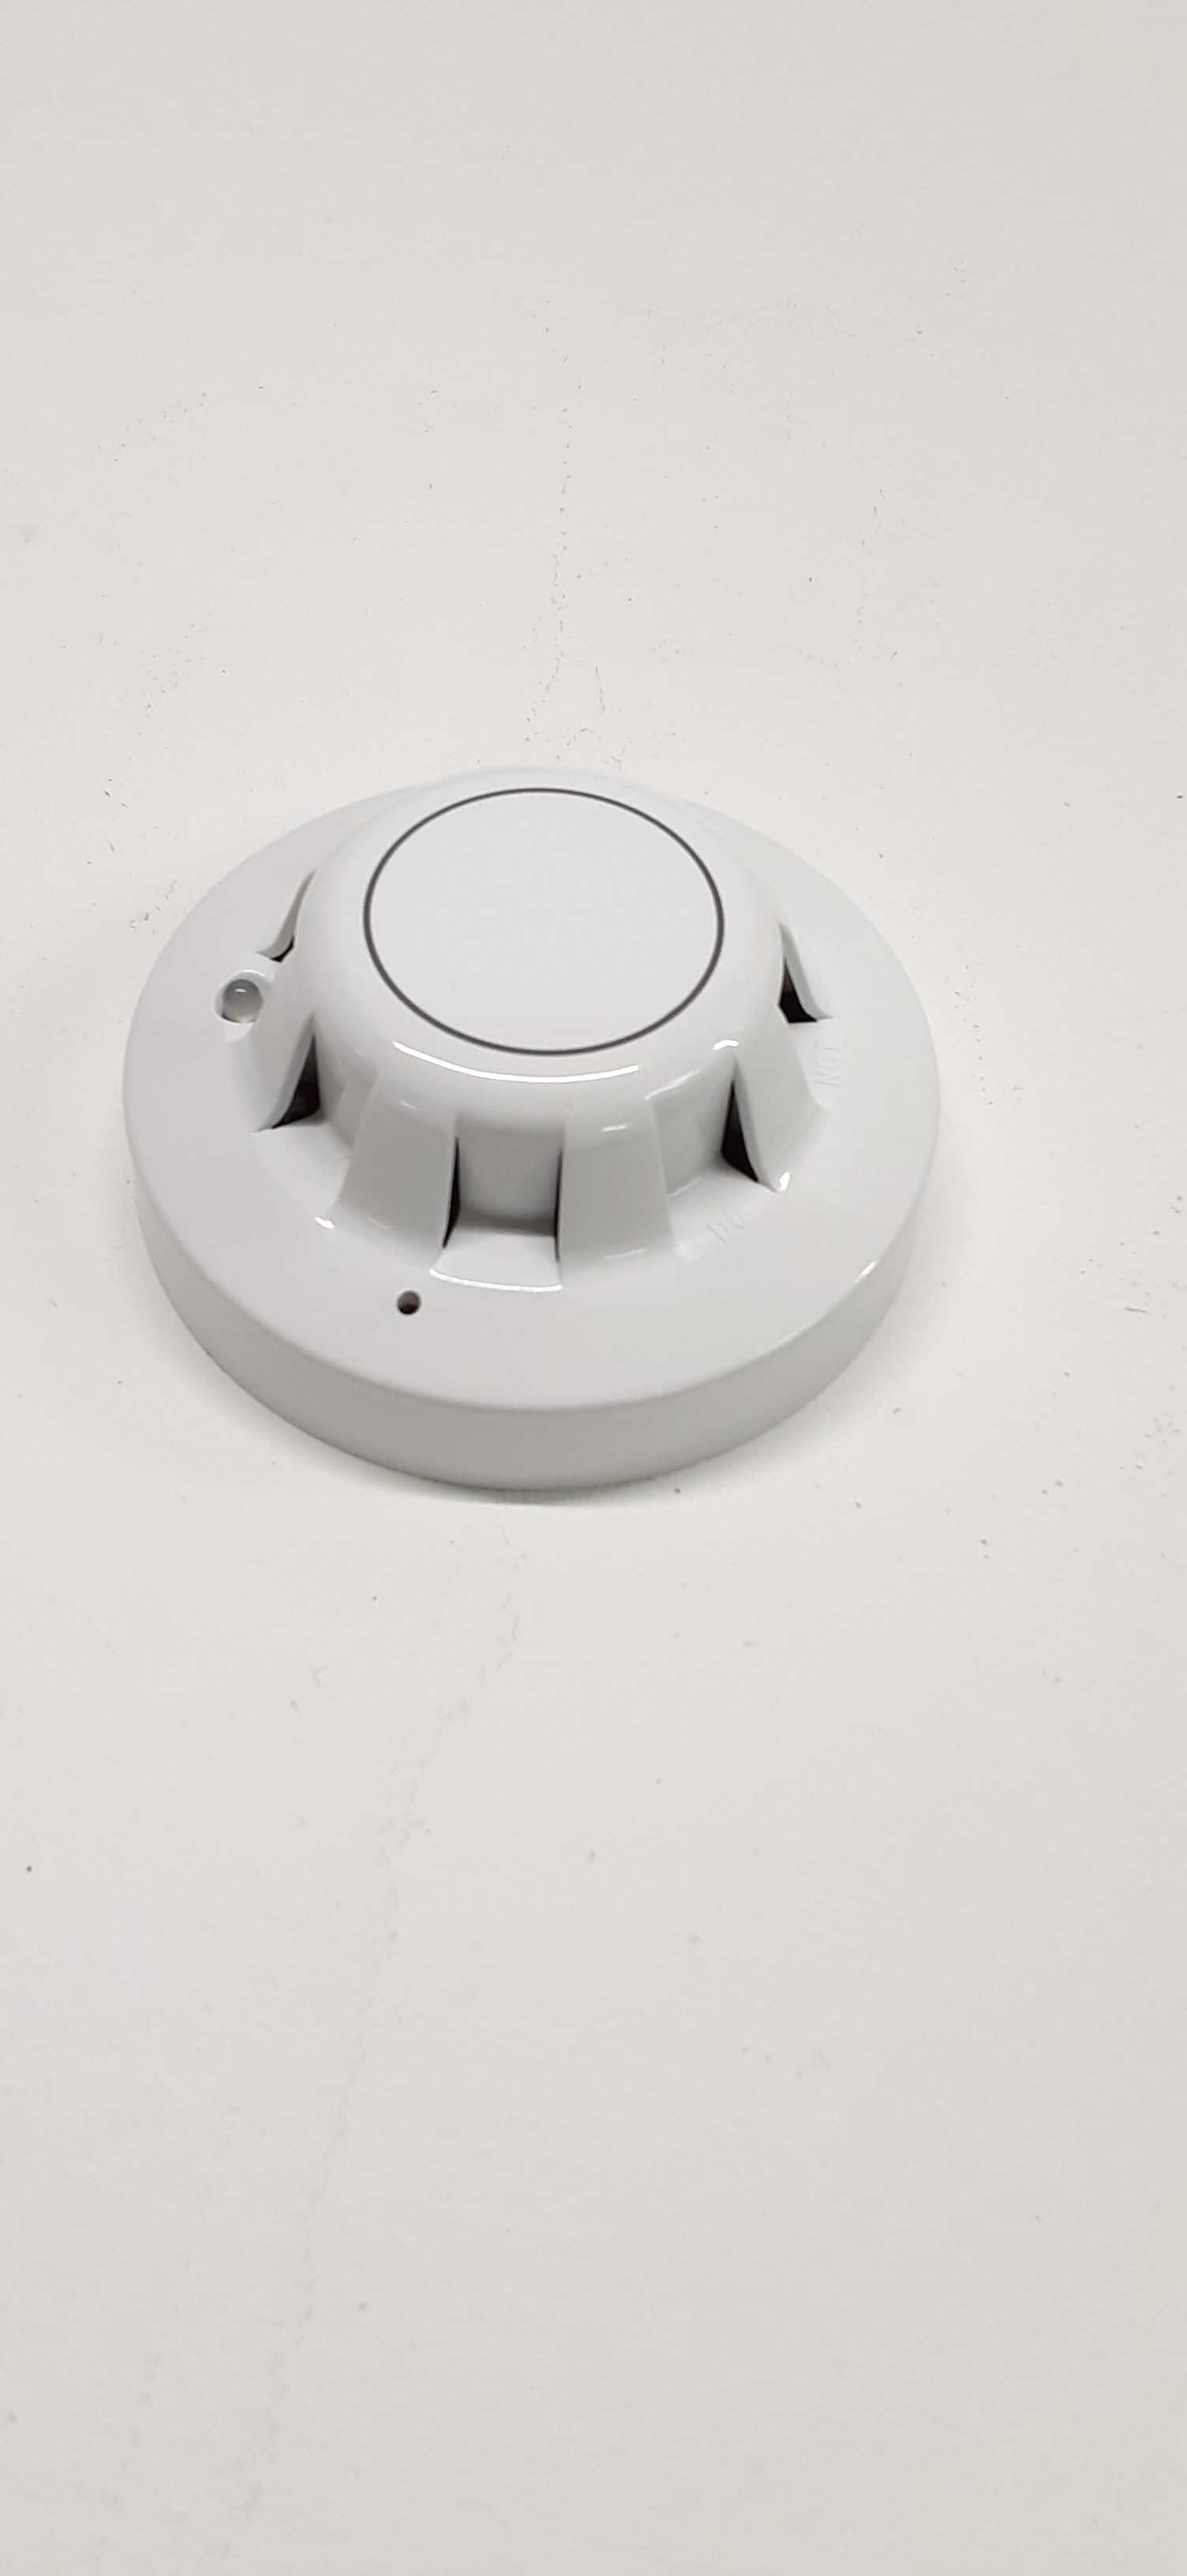 Gamewell 71033 Photoelectric Smoke Detector